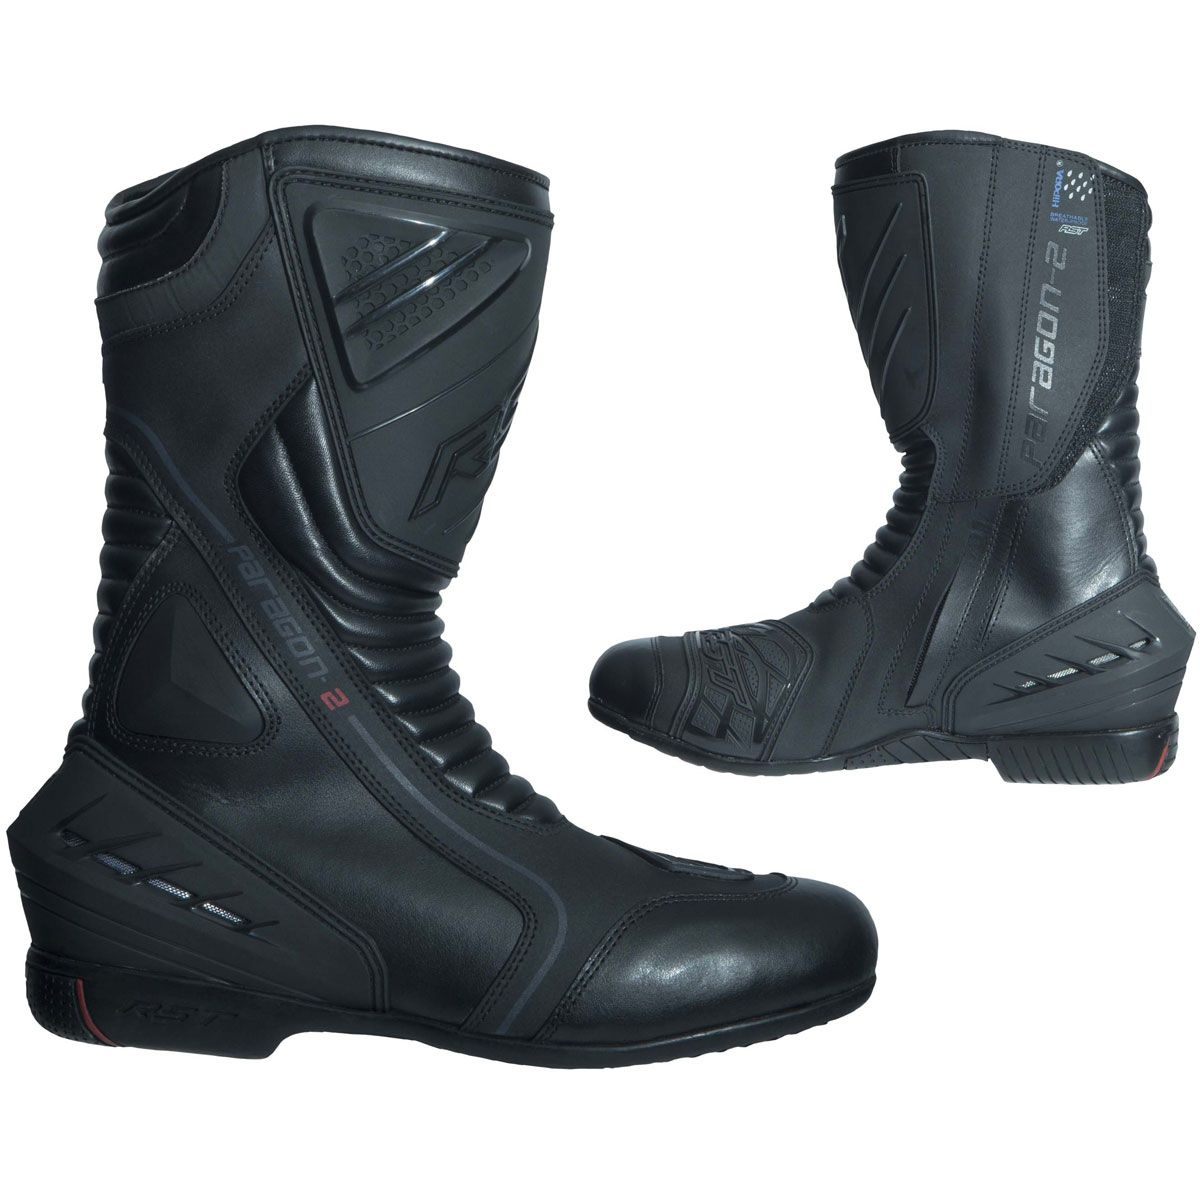 RST Paragon II Waterproof Boots Black